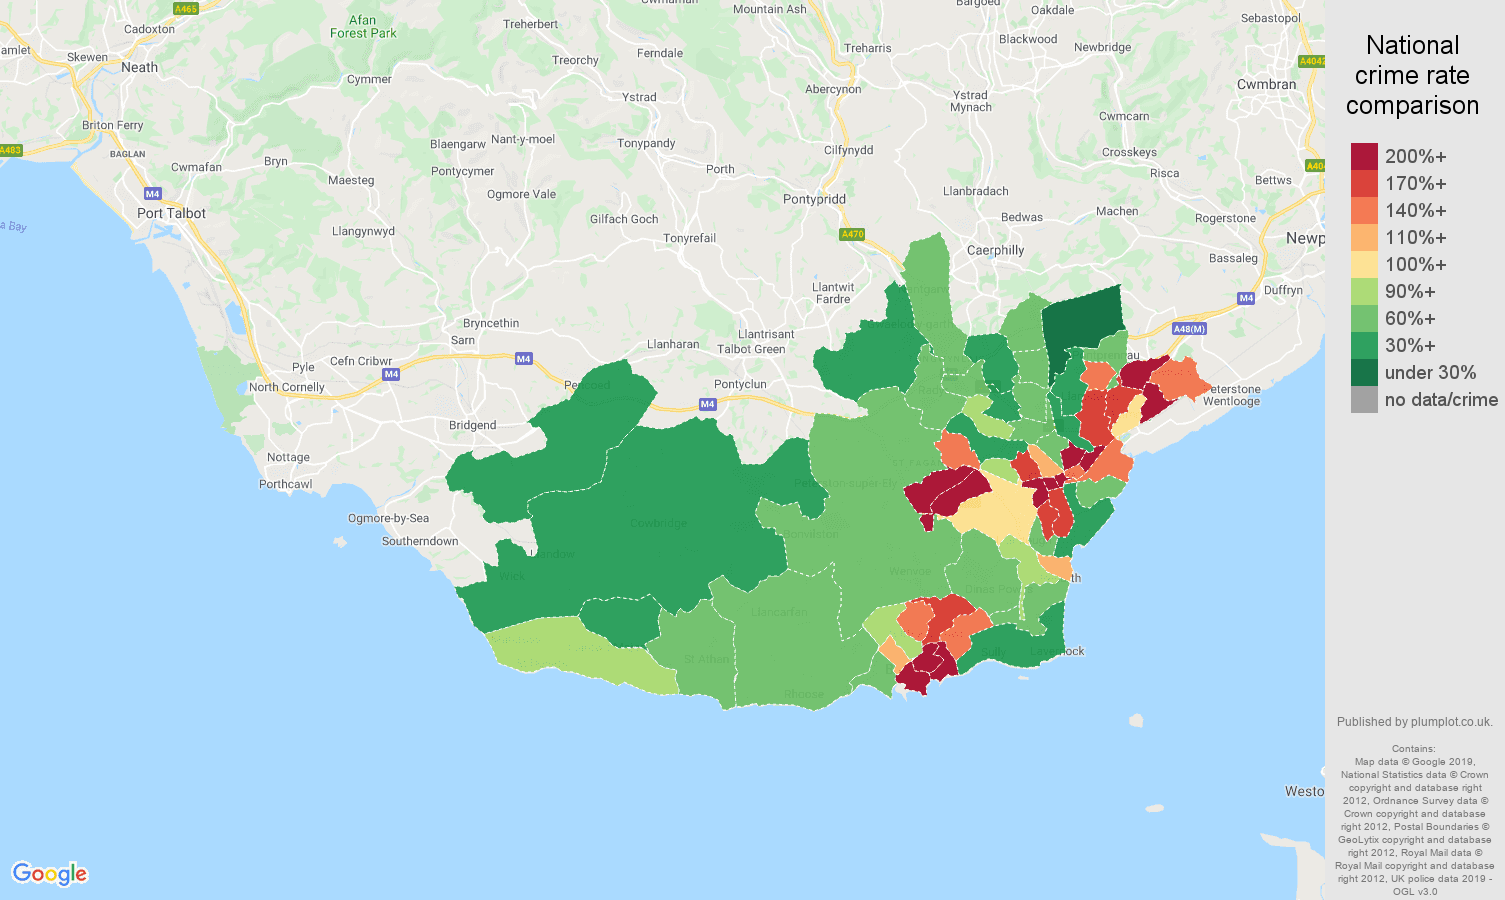 South Glamorgan public order crime rate comparison map